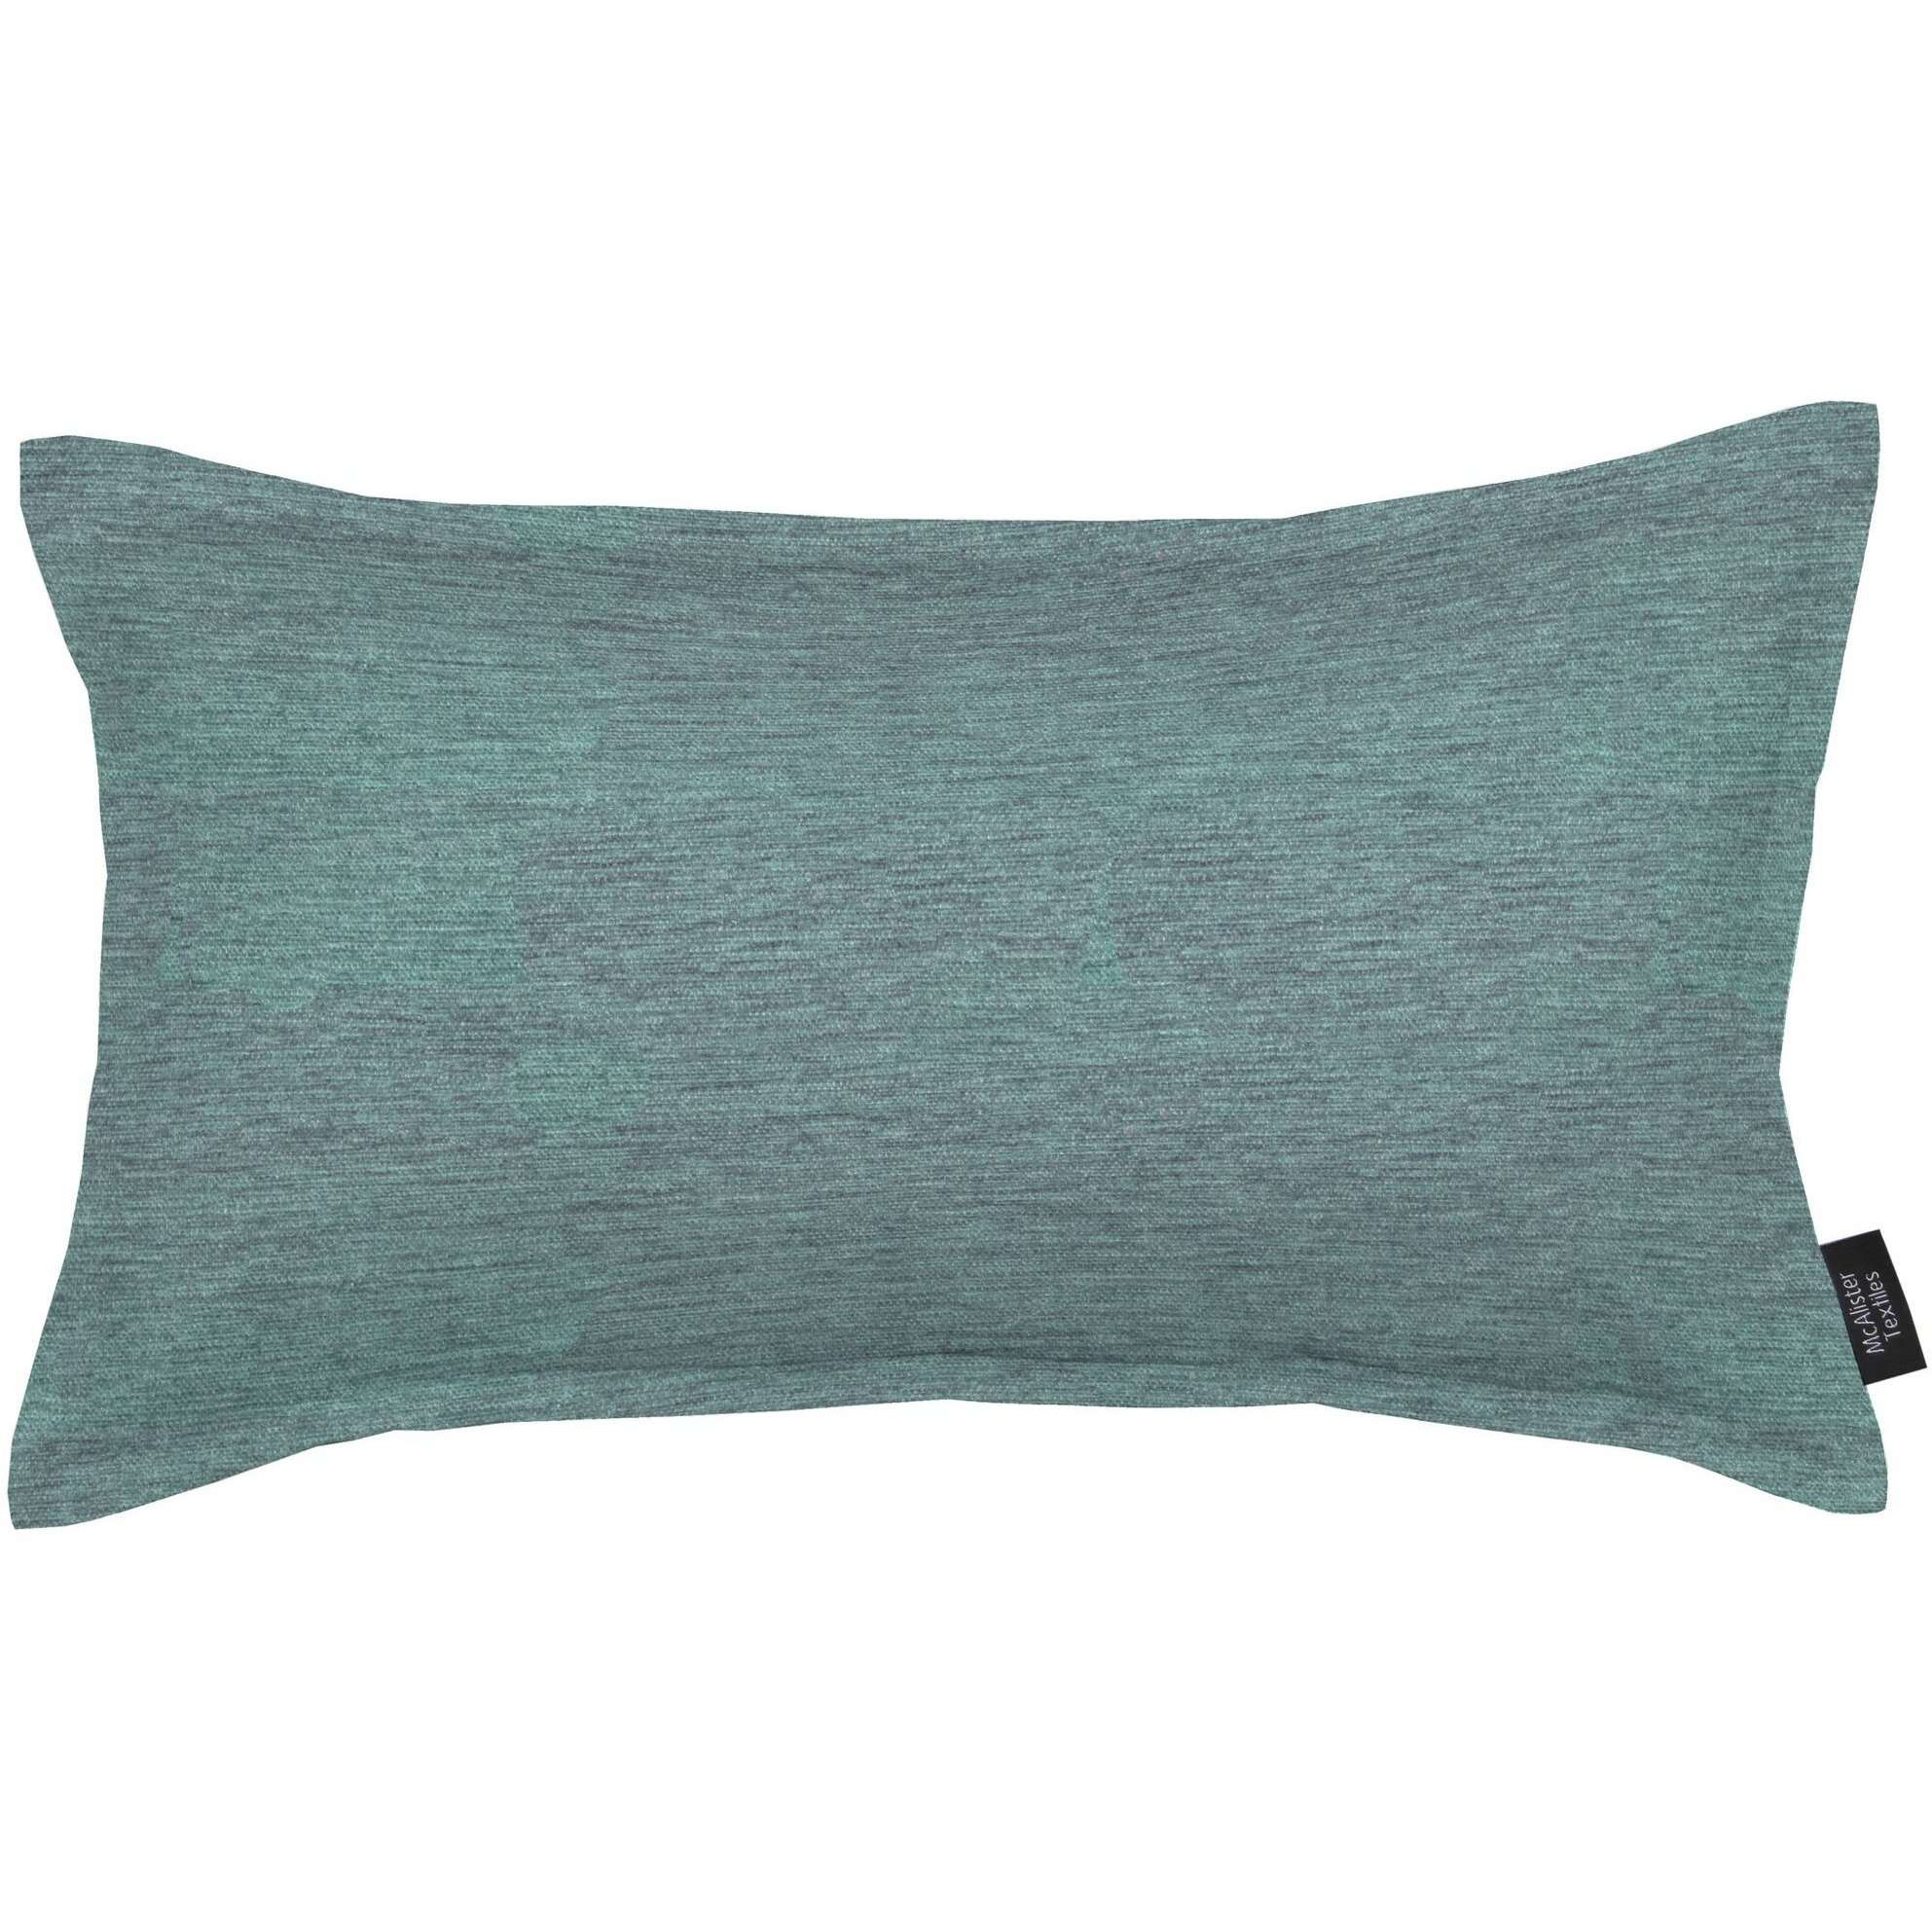 McAlister Textiles Plain Chenille Wedgewood Blue Cushion Cushions and Covers Polyester Filler 60cm x 40cm